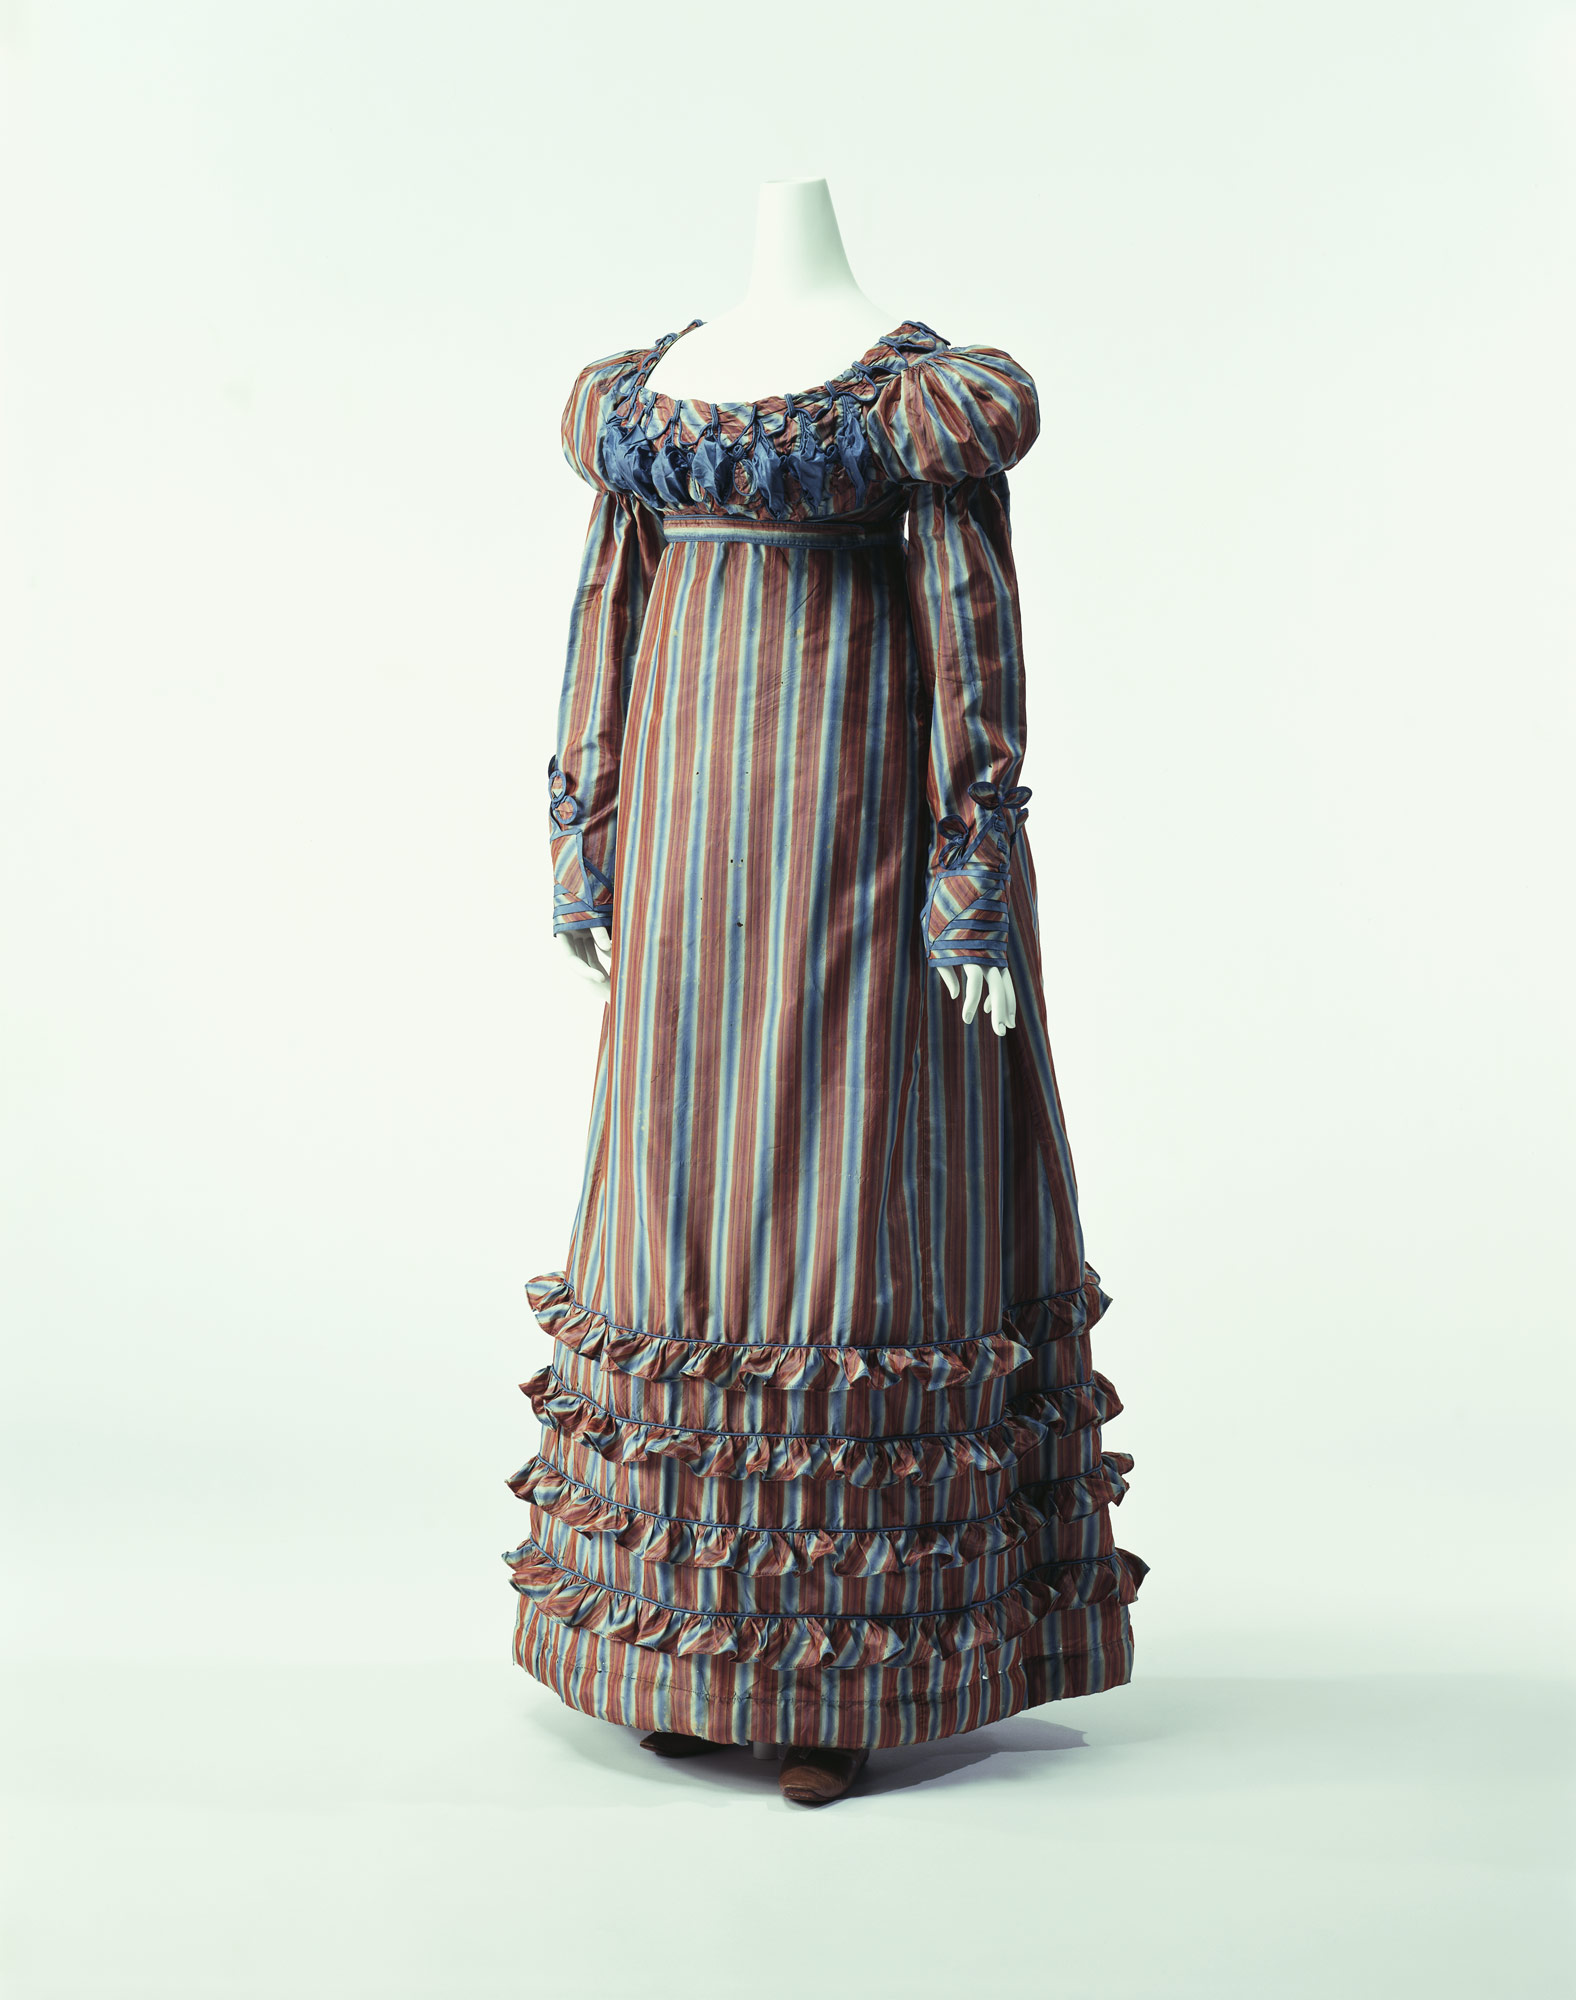 bb51d7145cbc c. 1820. Brown and blue striped silk taffeta; spencer and dress set.